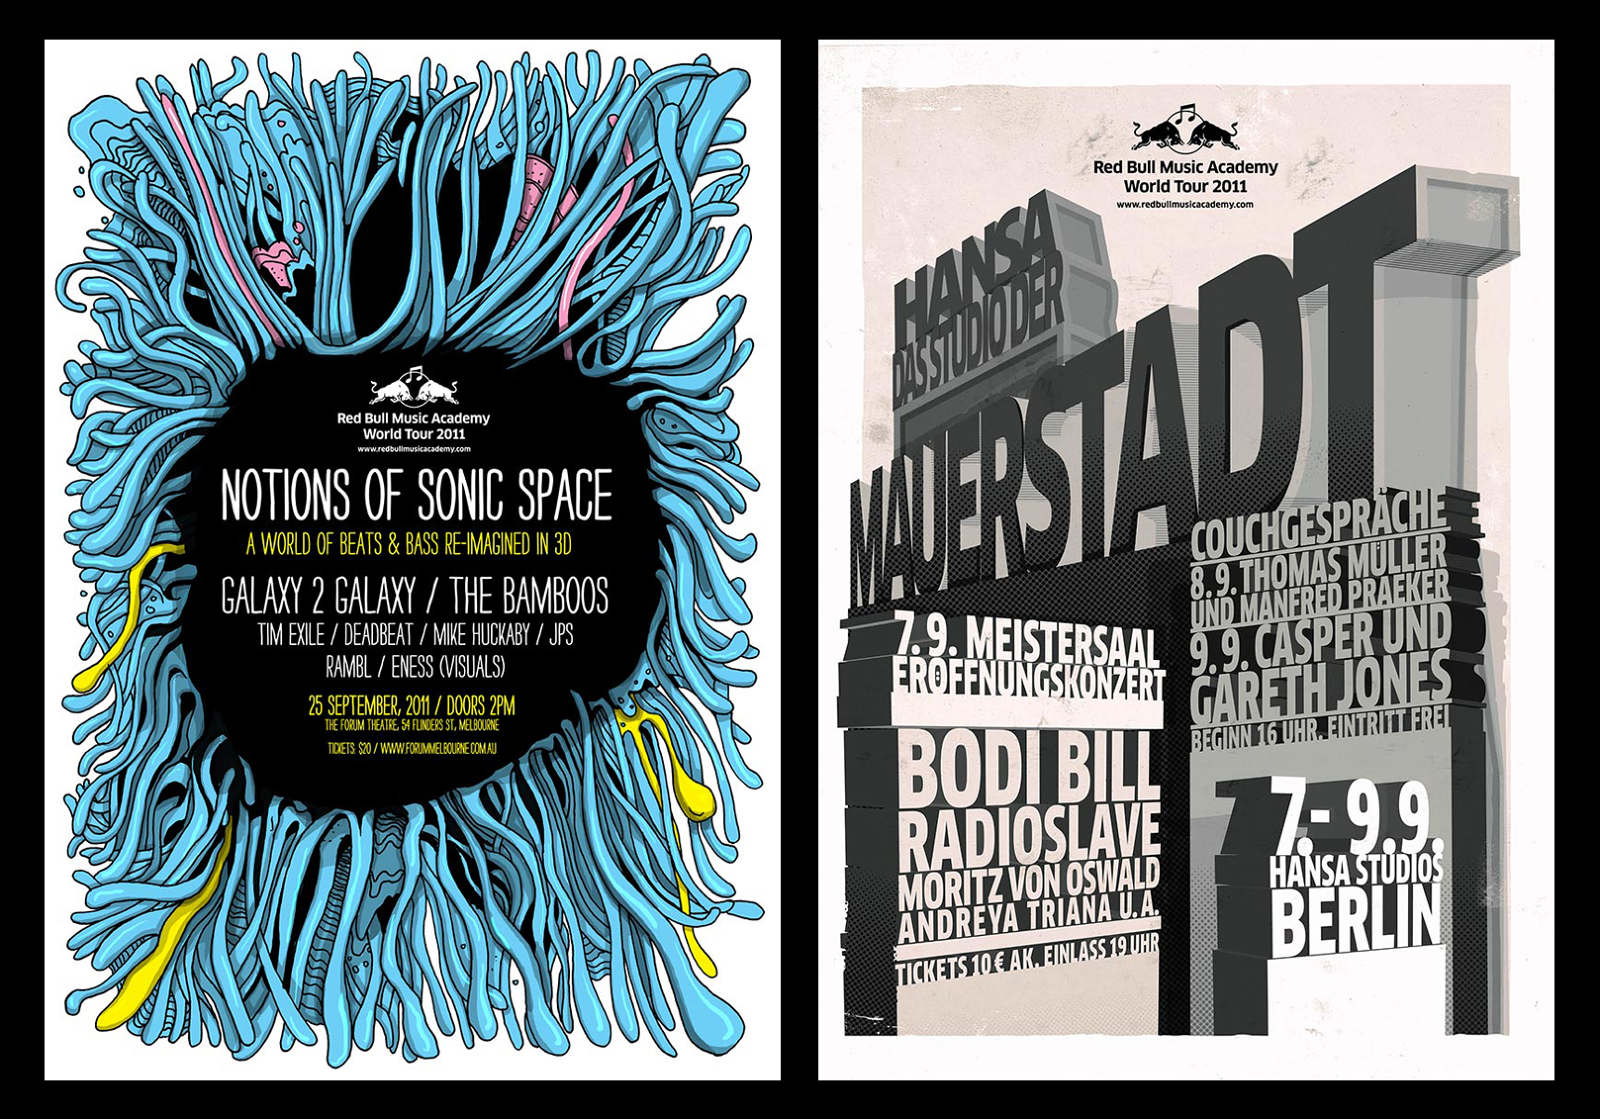 Posters from the Red Bull Music Academy tour project.